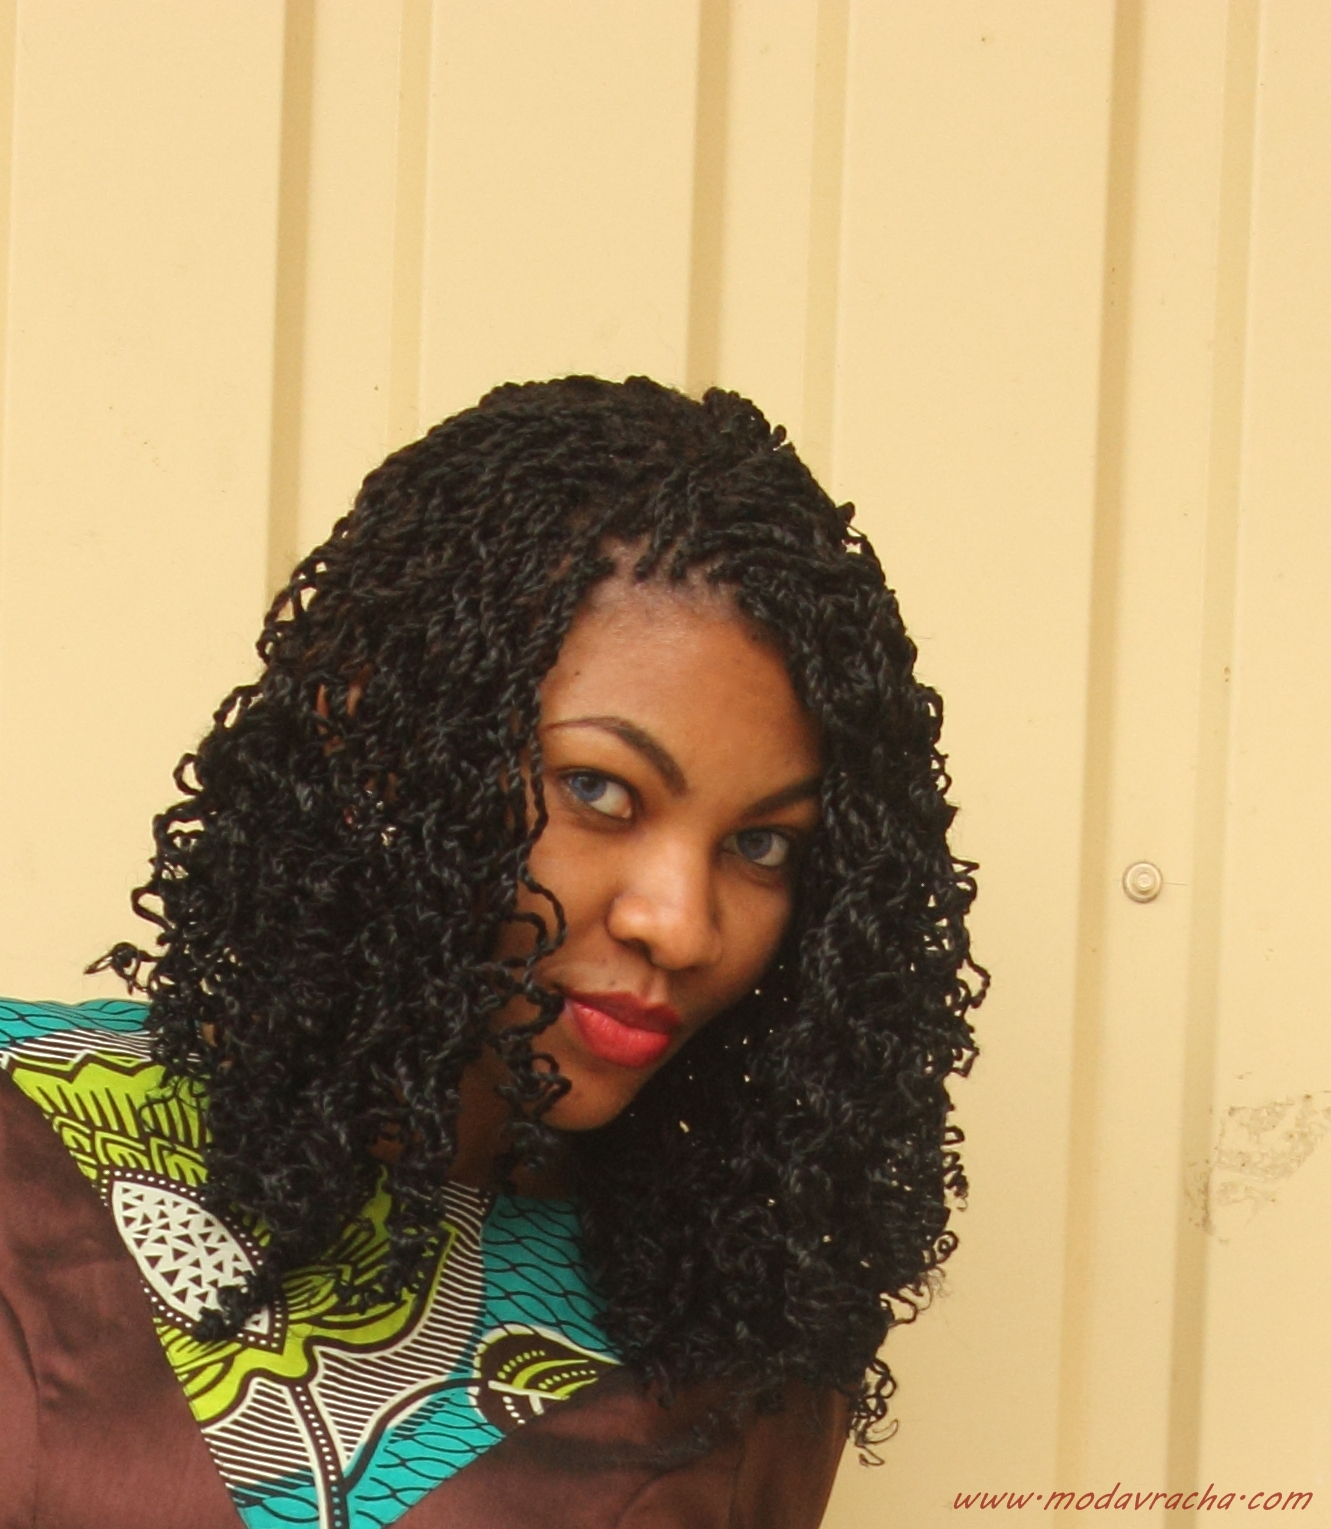 Nigerian fashion blogger modavracha rocking twisted braids